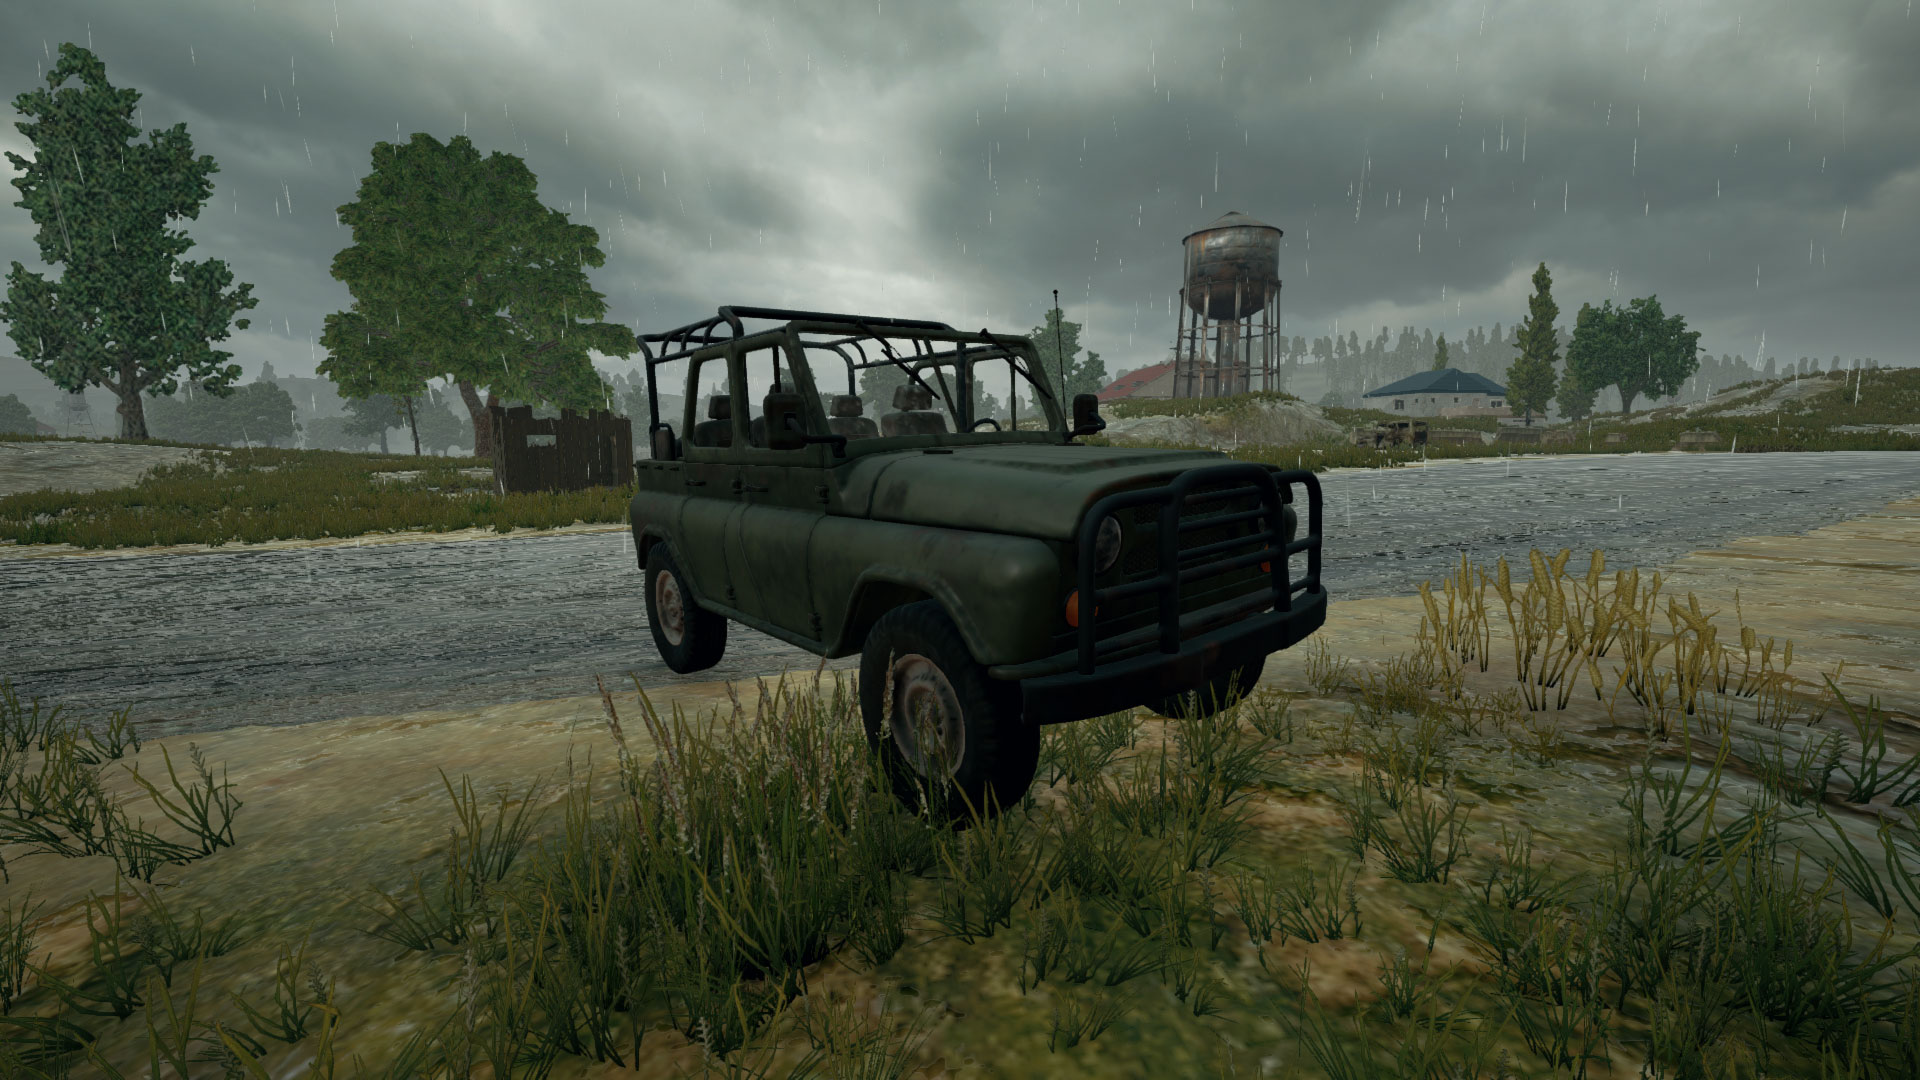 Picture of UAZ jeep Vehicle from PUBG.